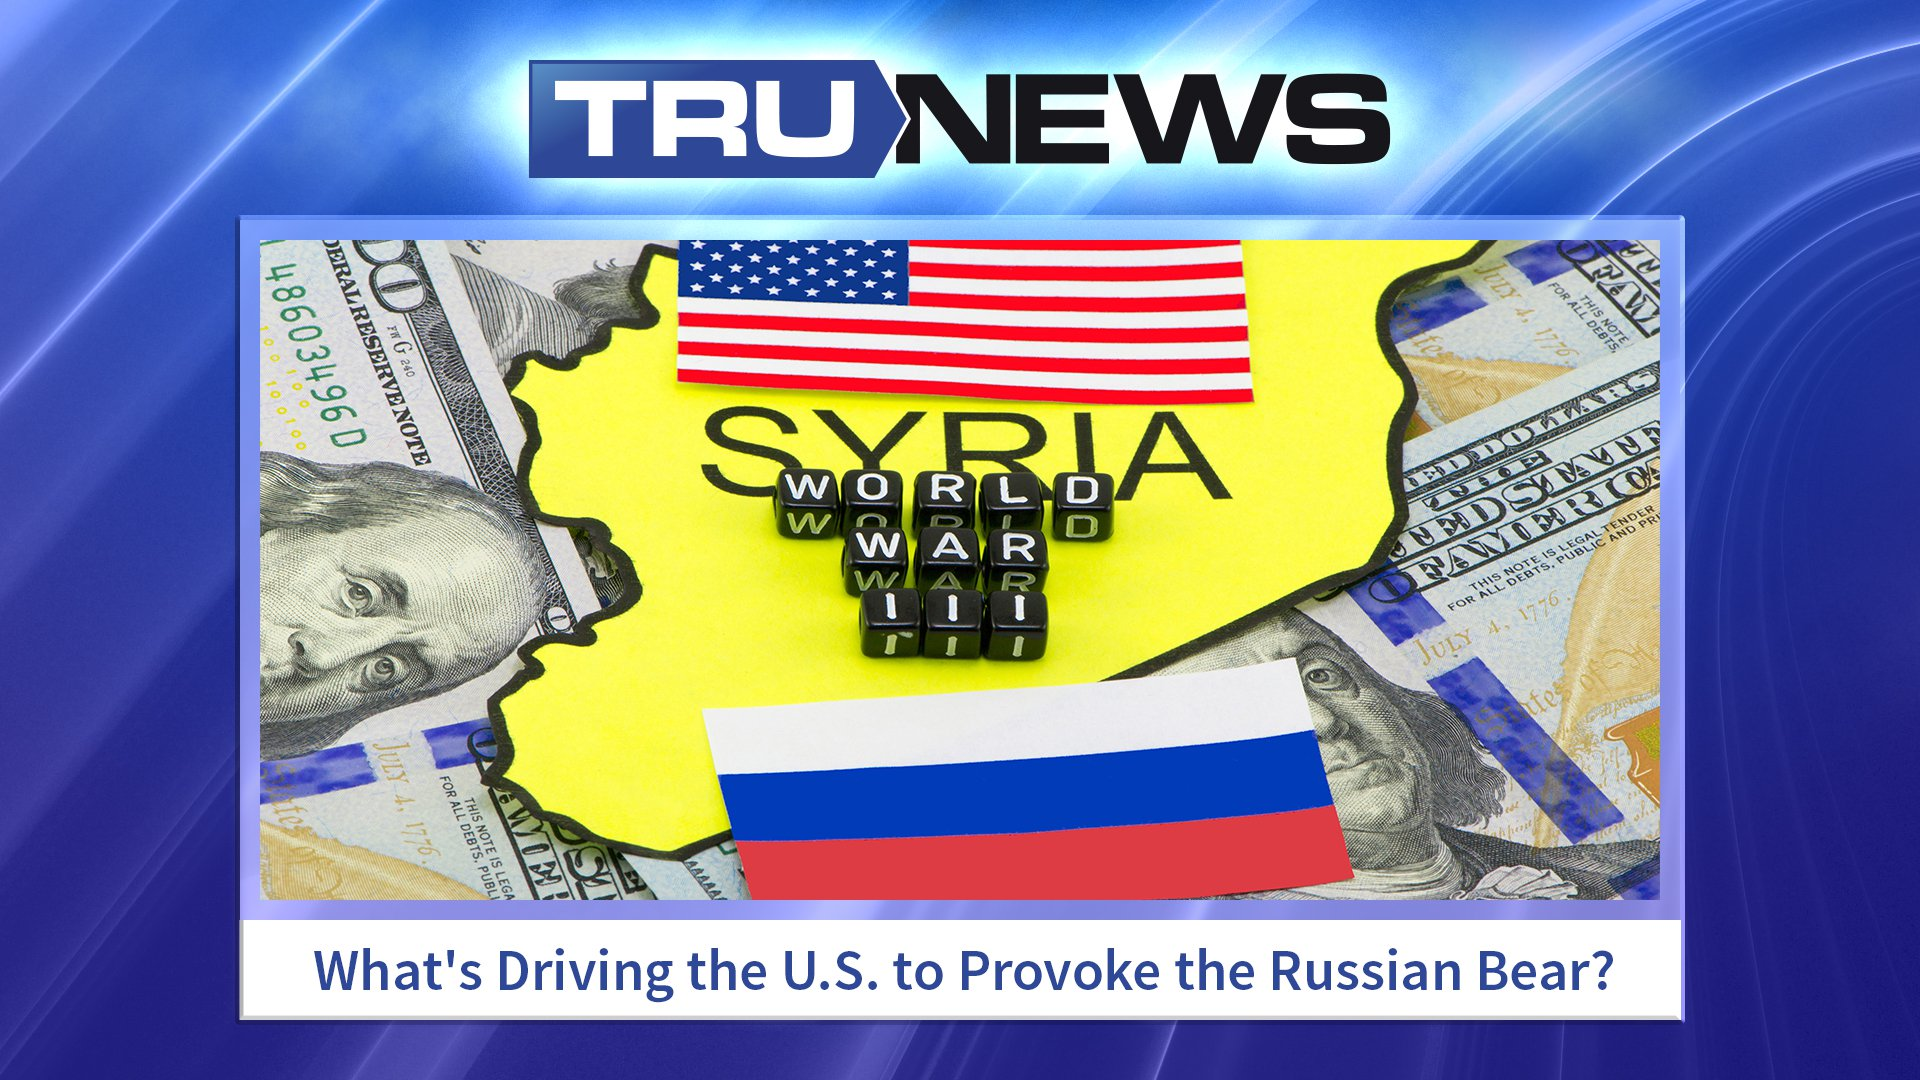 What's Driving the U.S. to Provoke the Russian Bear?